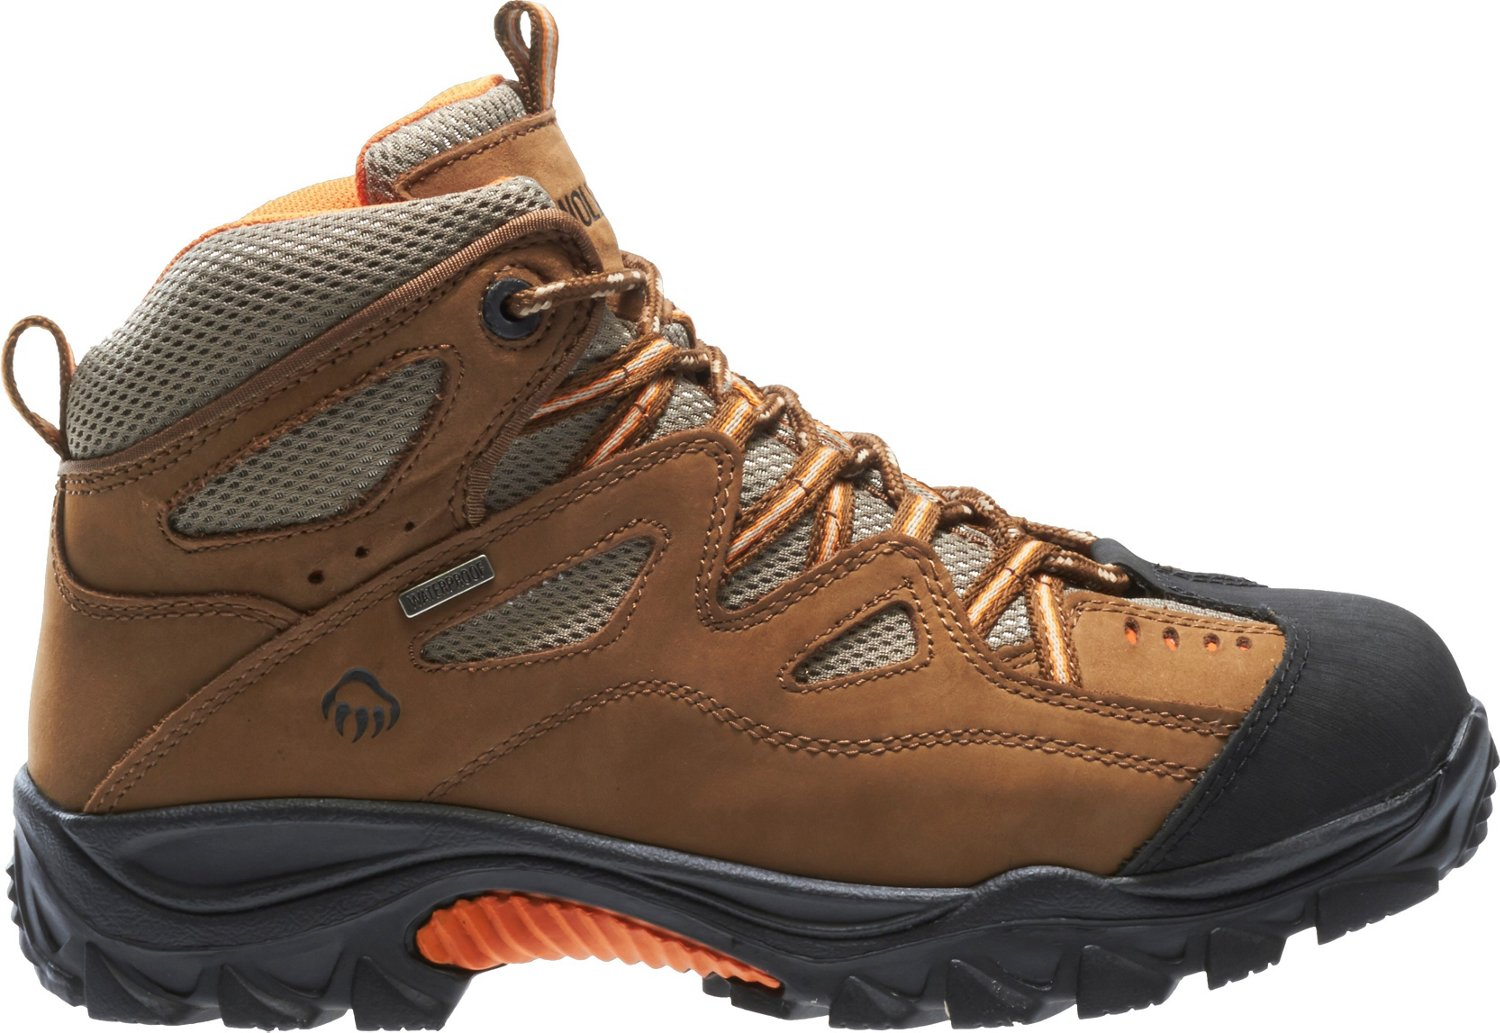 939a01805a8 Wolverine Men's Durant EH Steel Toe Lace Up Work Boots